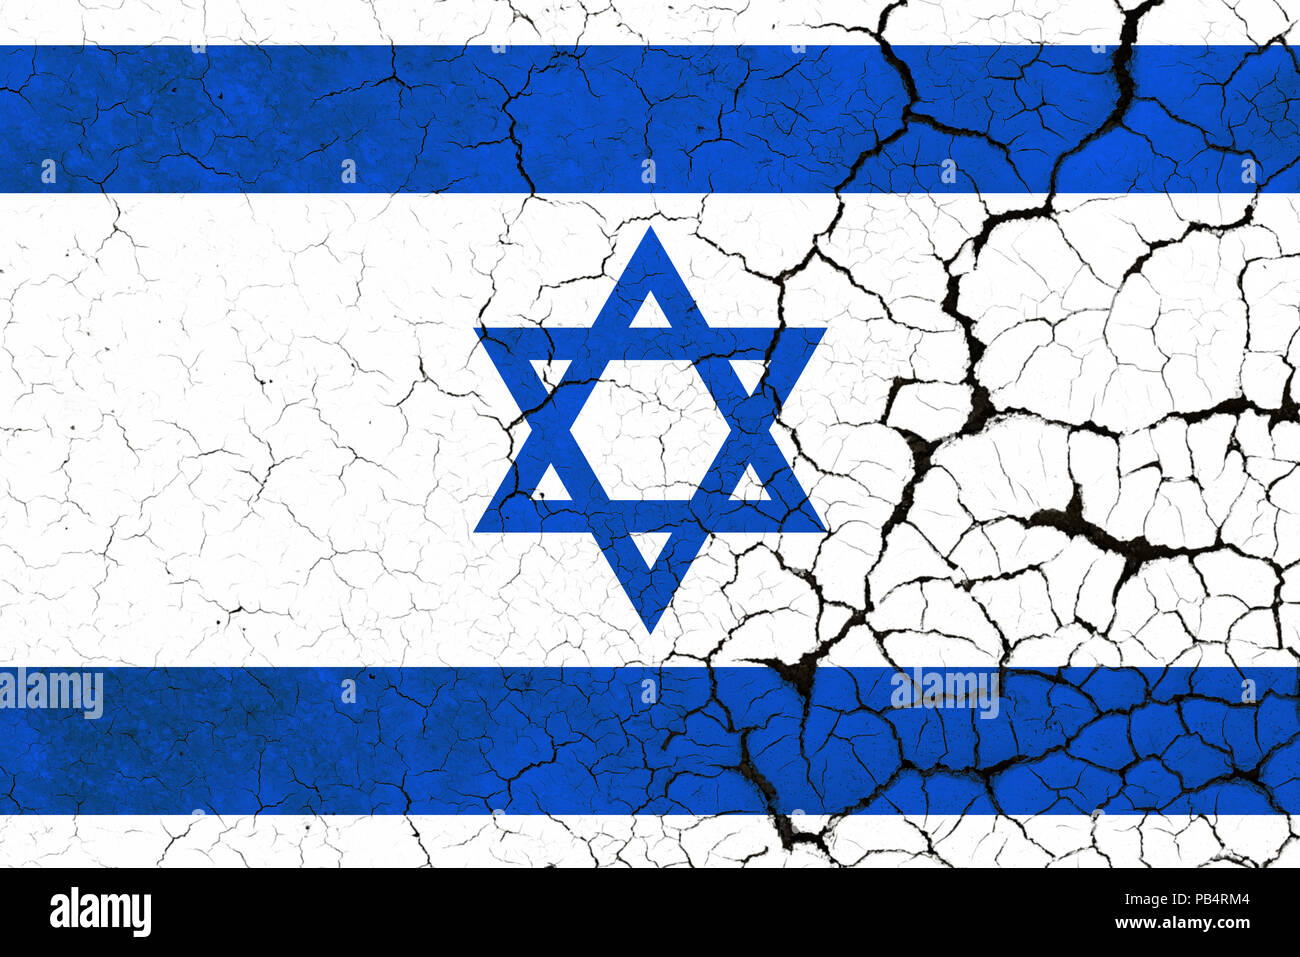 A Cracked And Fragile Israeli Flag - Stock Image